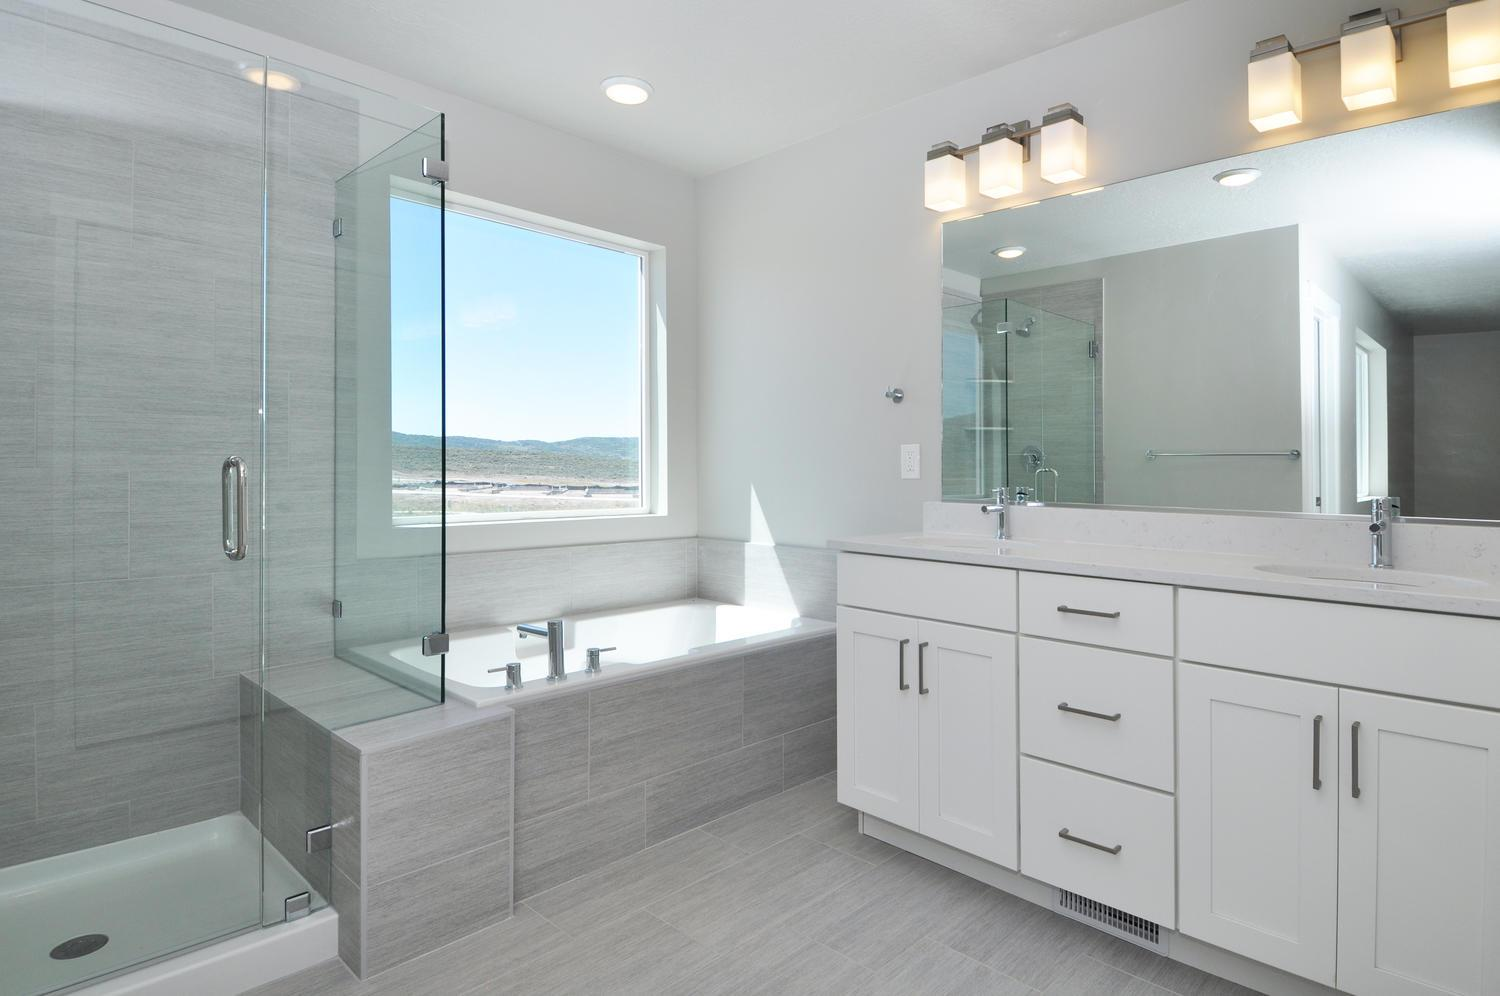 Bathroom featured in the Cortes By Garbett Homes in Salt Lake City-Ogden, UT